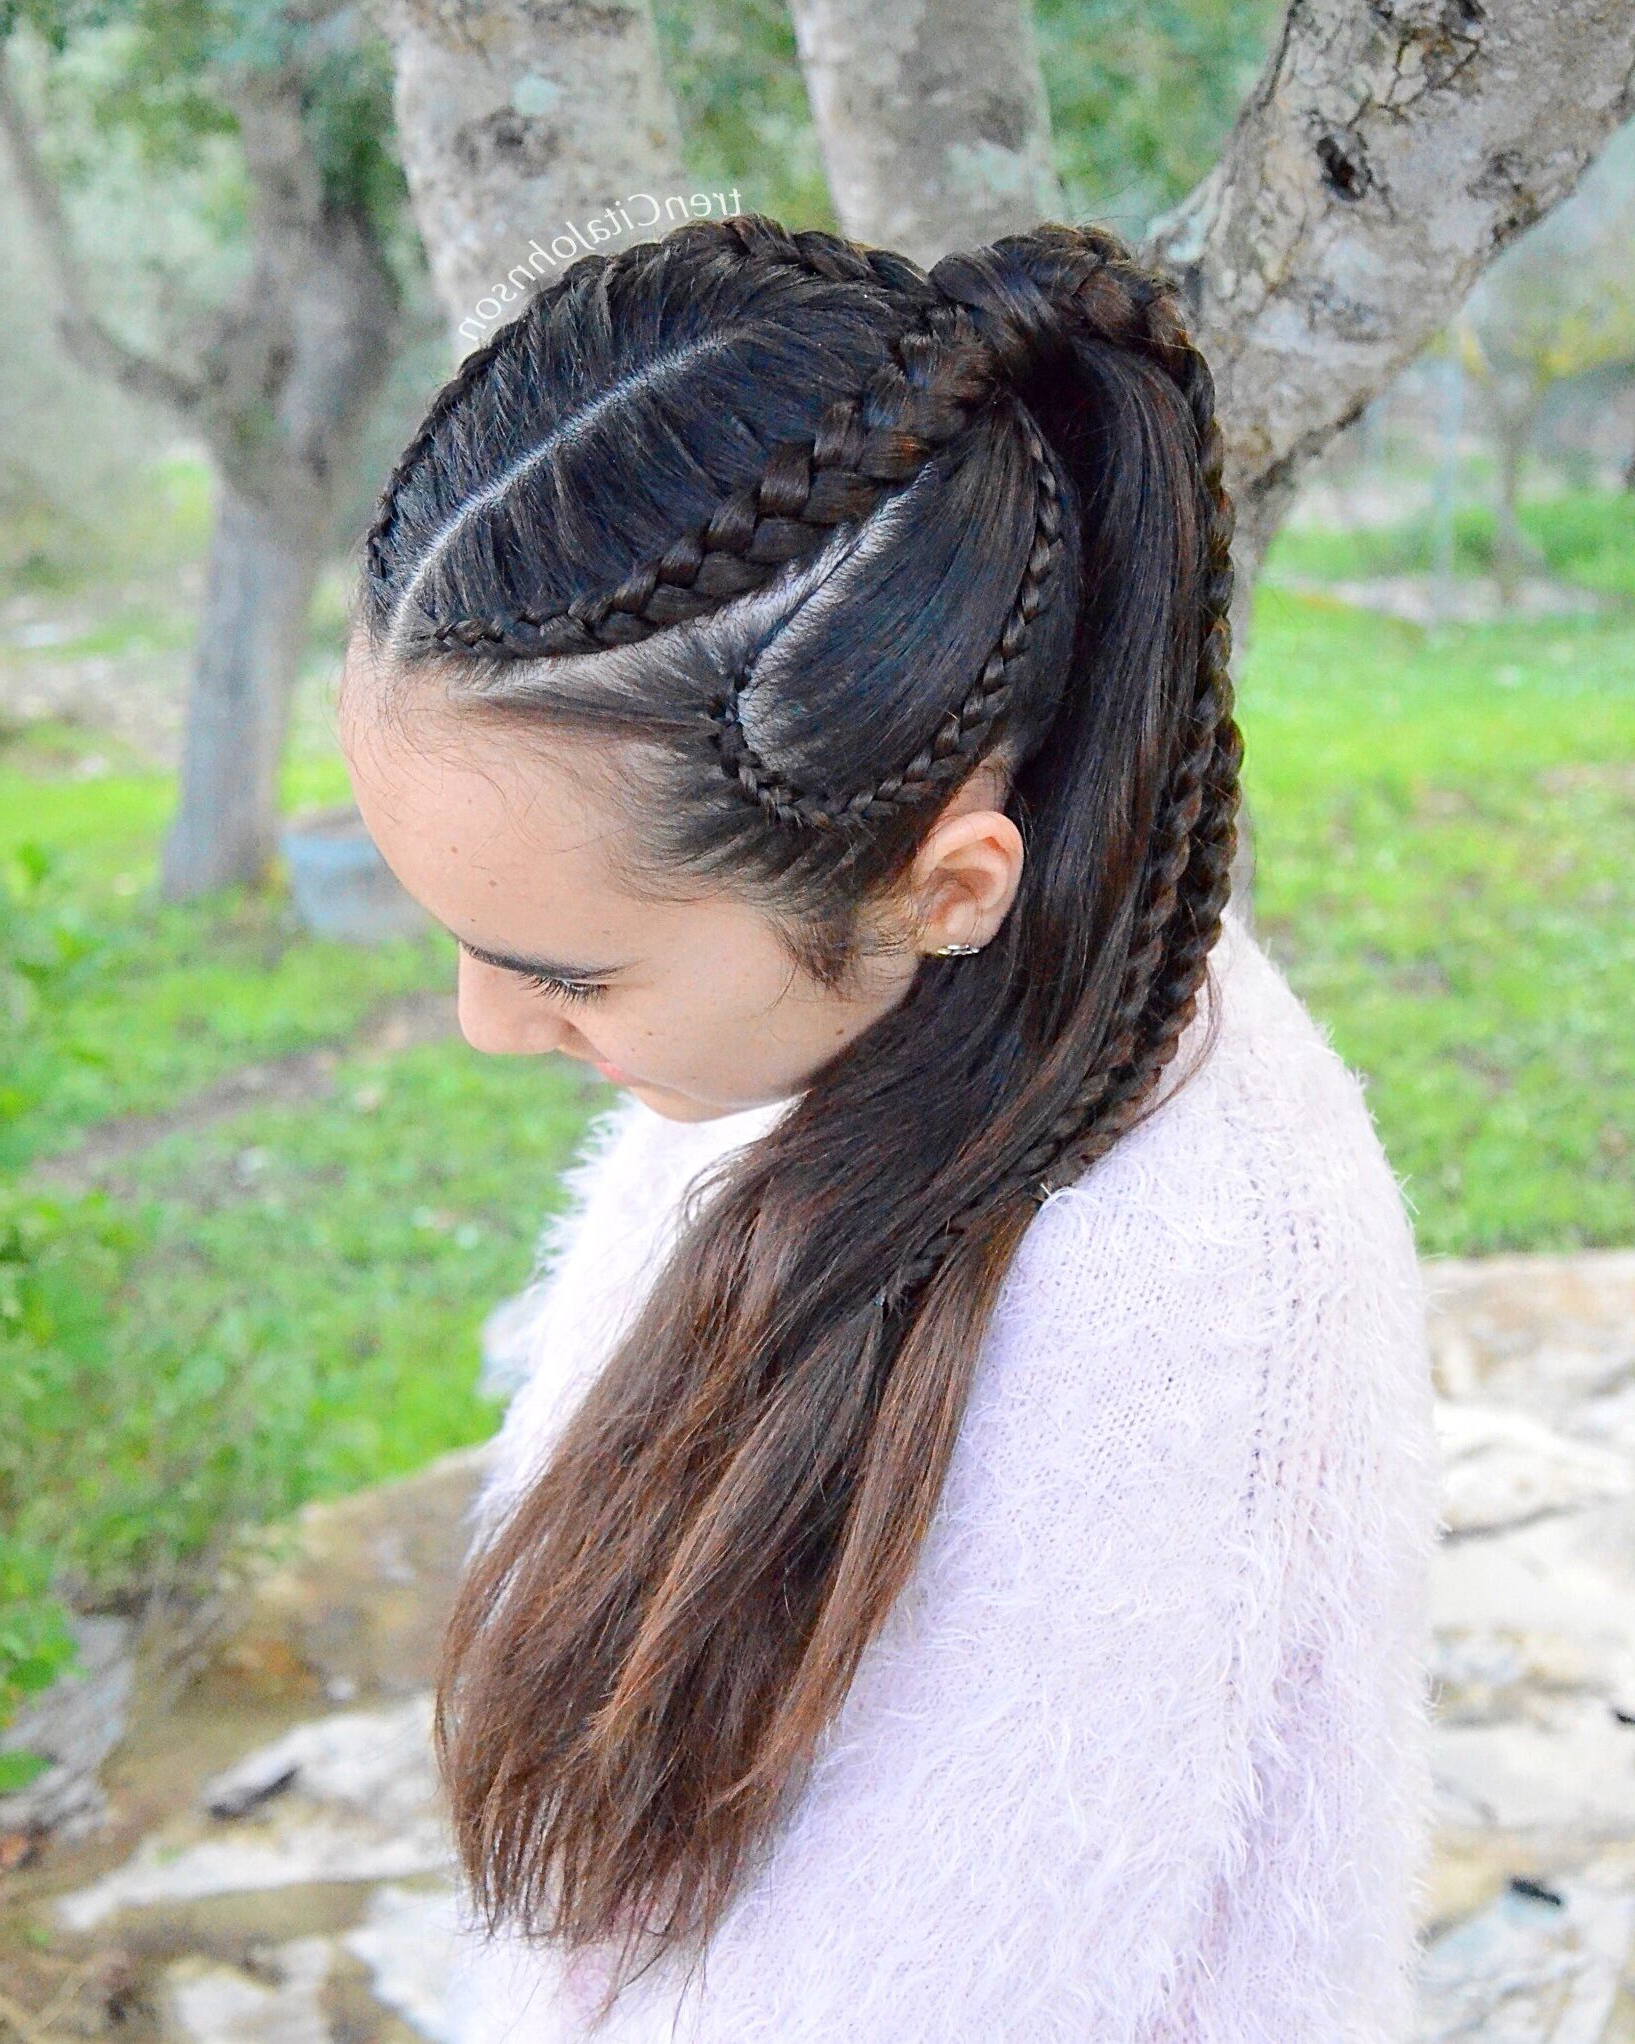 Best And Newest Curvy Braid Hairstyles And Long Tails Pertaining To Ponytail With Double Dutch Lace Braids And Curvy Cornrows (View 11 of 20)